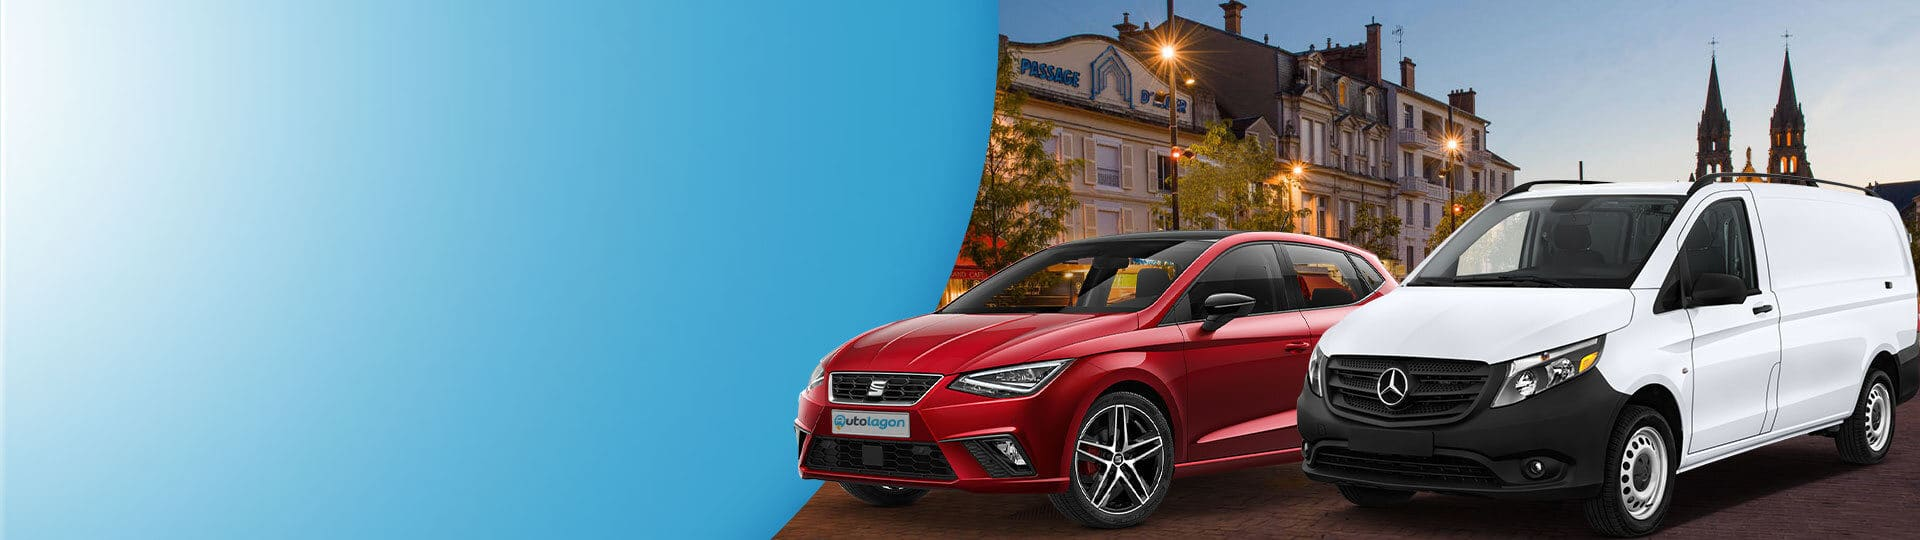 Book your car at the best price in Moulins - Avermes